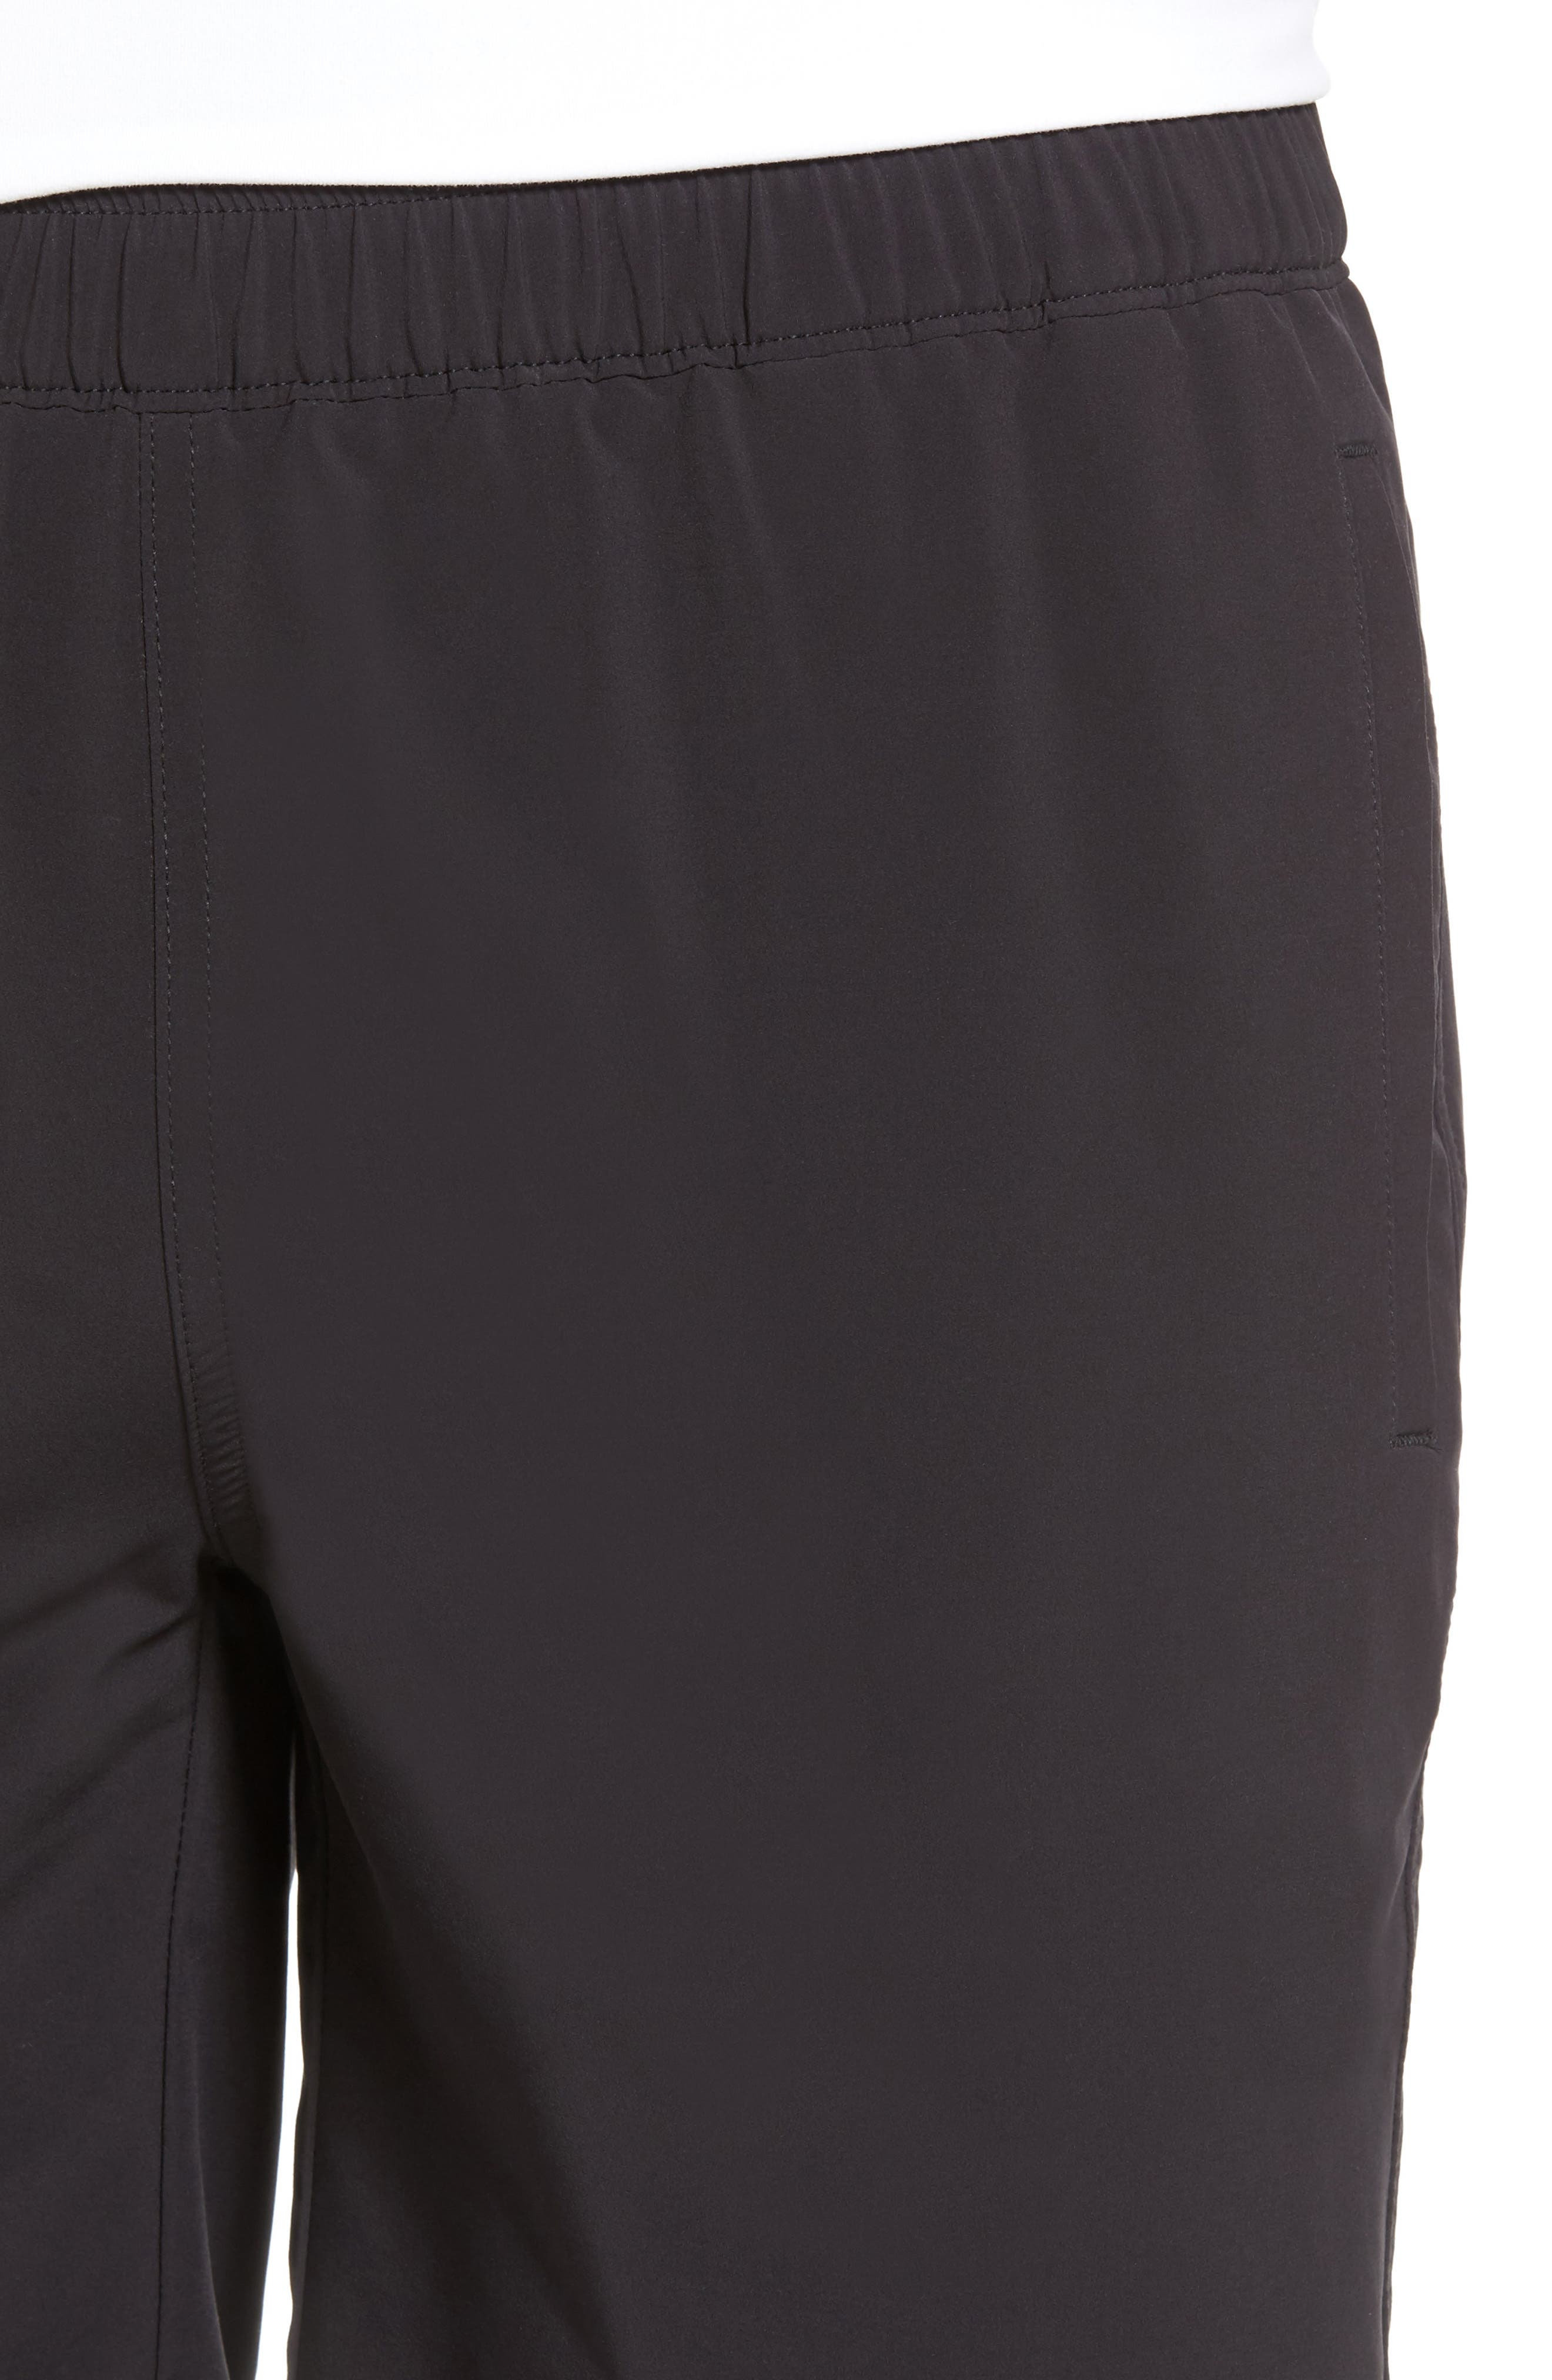 Oslo Sport Shorts,                             Alternate thumbnail 4, color,                             001